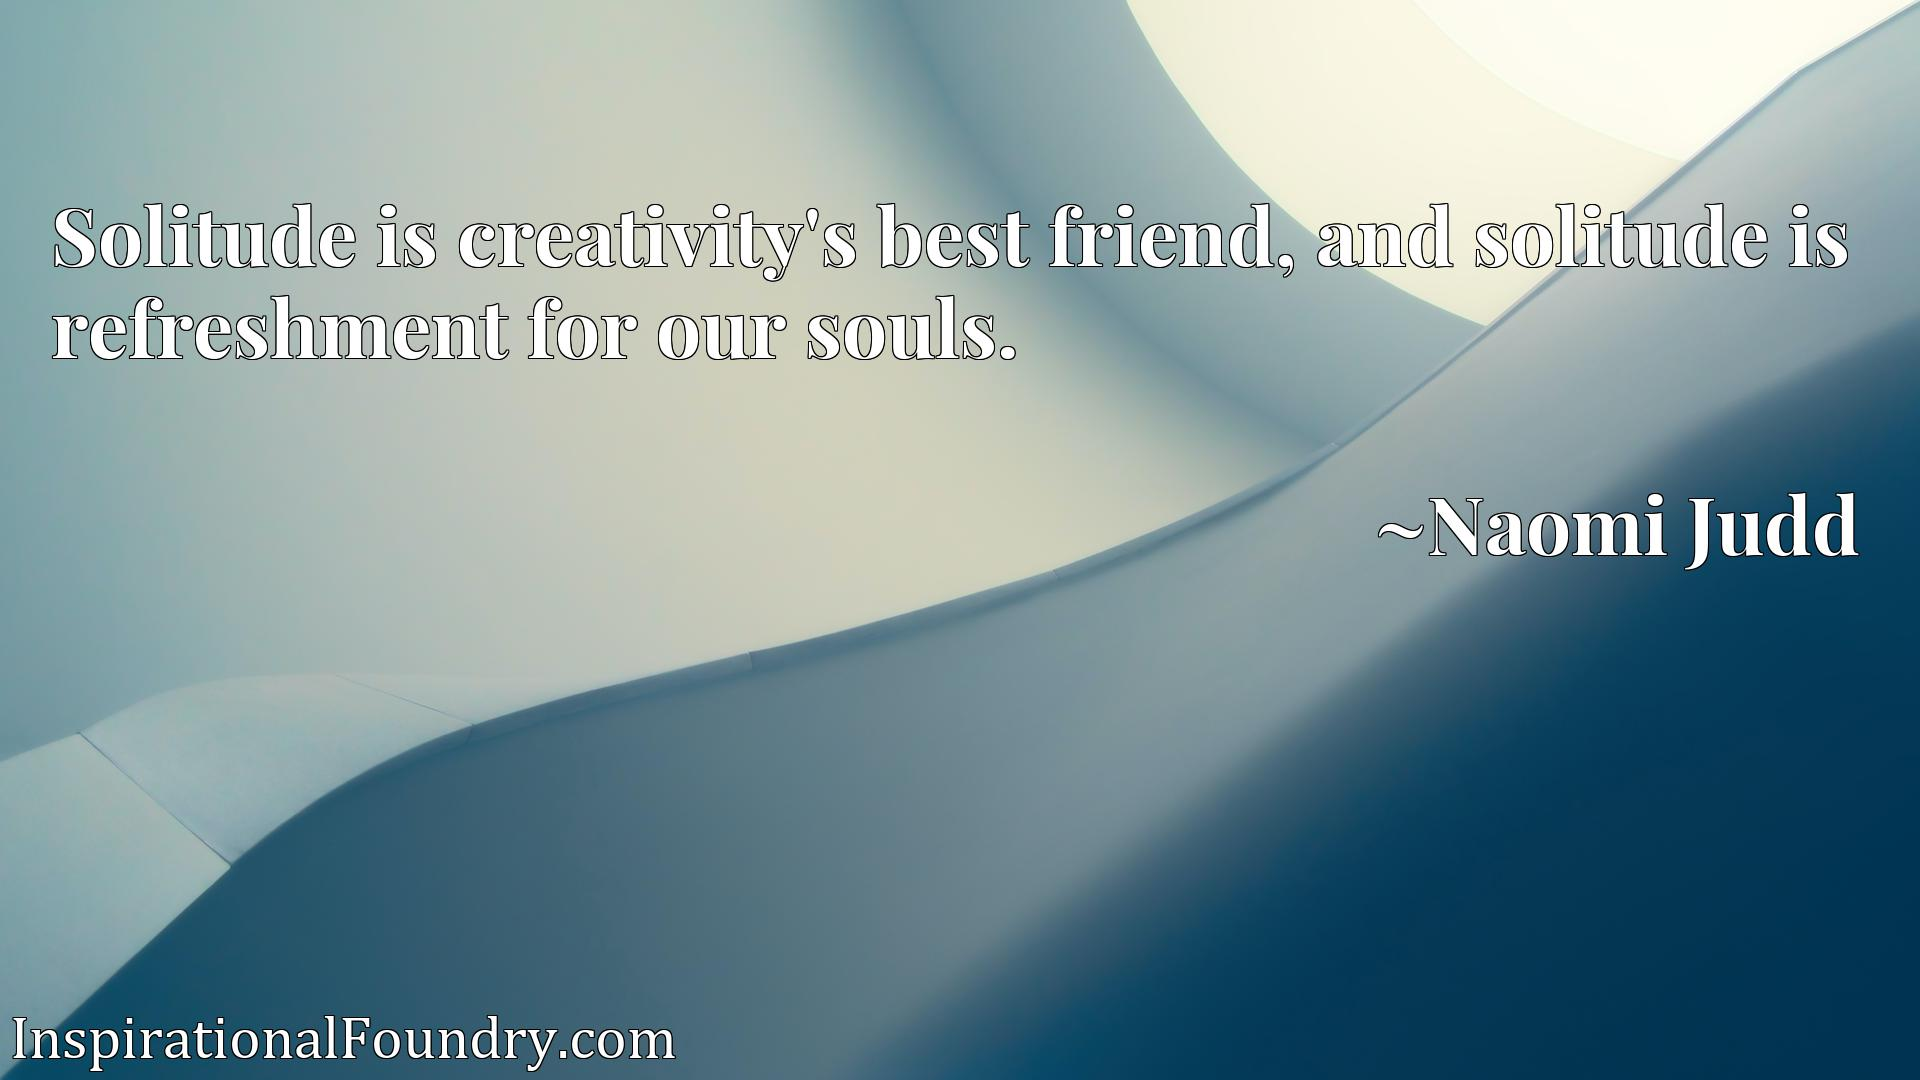 Solitude is creativity's best friend, and solitude is refreshment for our souls.